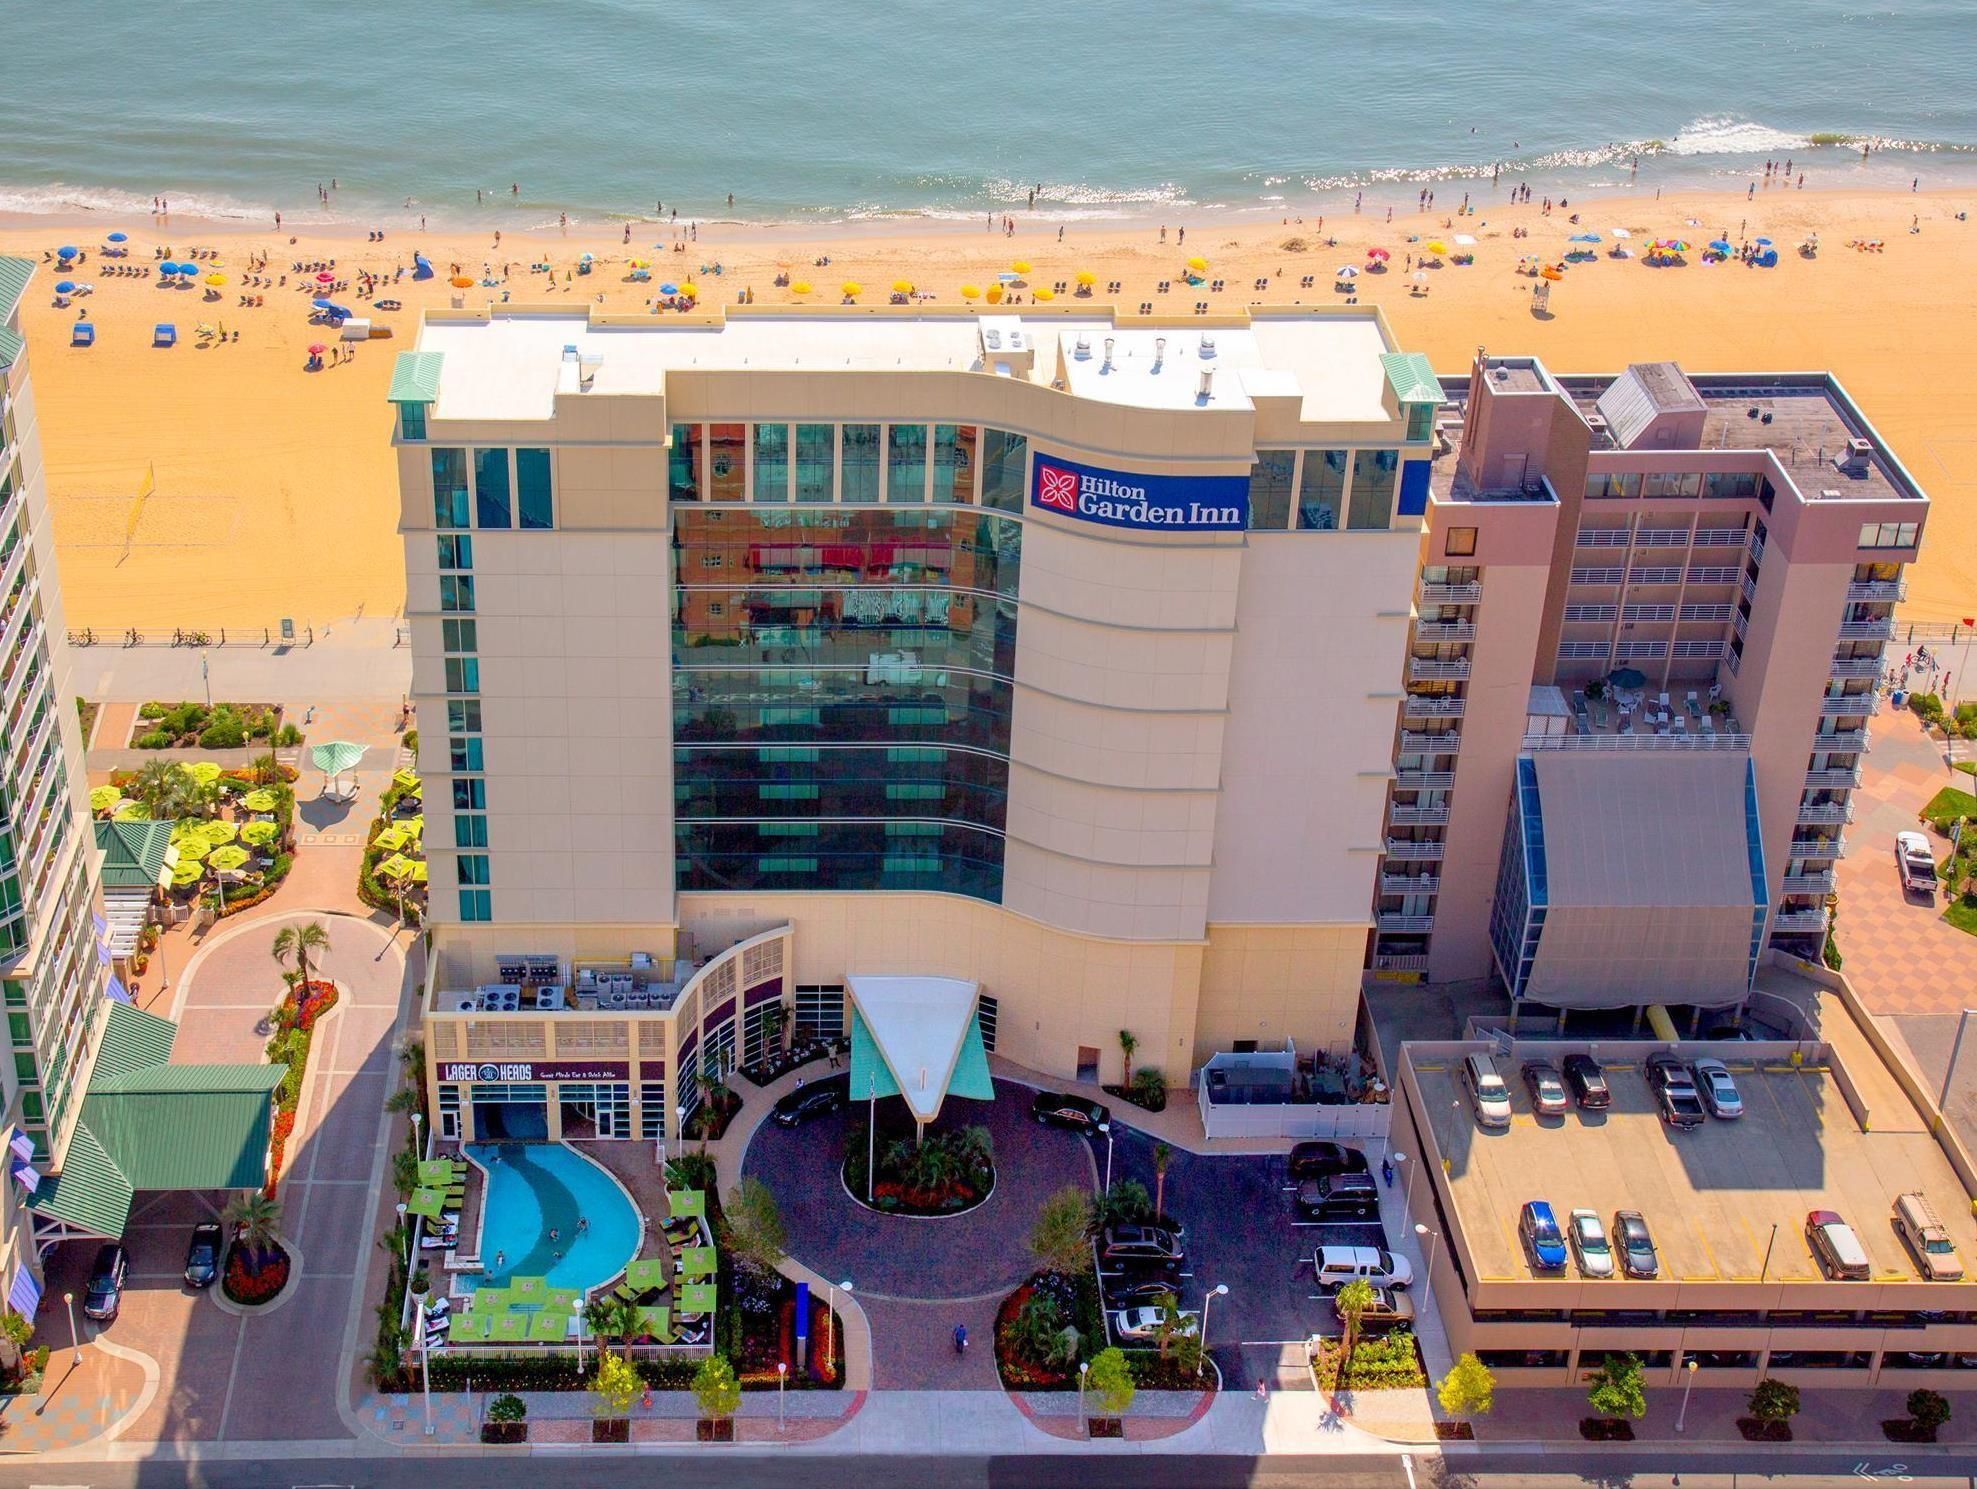 Virginia Beach Va Hilton Garden Inn Virginia Beach Oceanfront United States Nor Virginia Beach Oceanfront Virginia Beach Oceanfront Hotels Virginia Beach Va